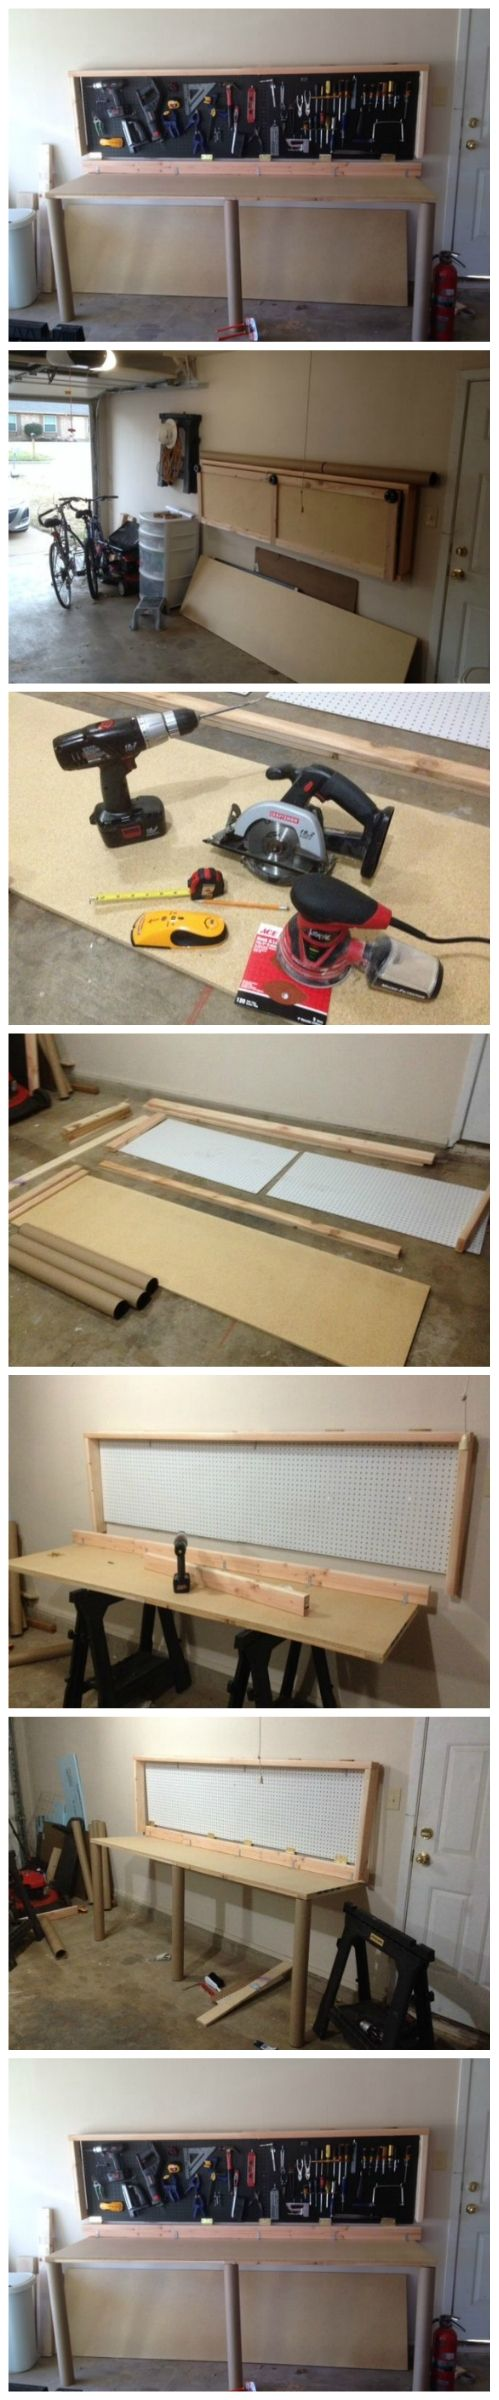 Foldaway Workbench | Wall Mounted Folding Workbench | Wall Mounted Folding Work Bench